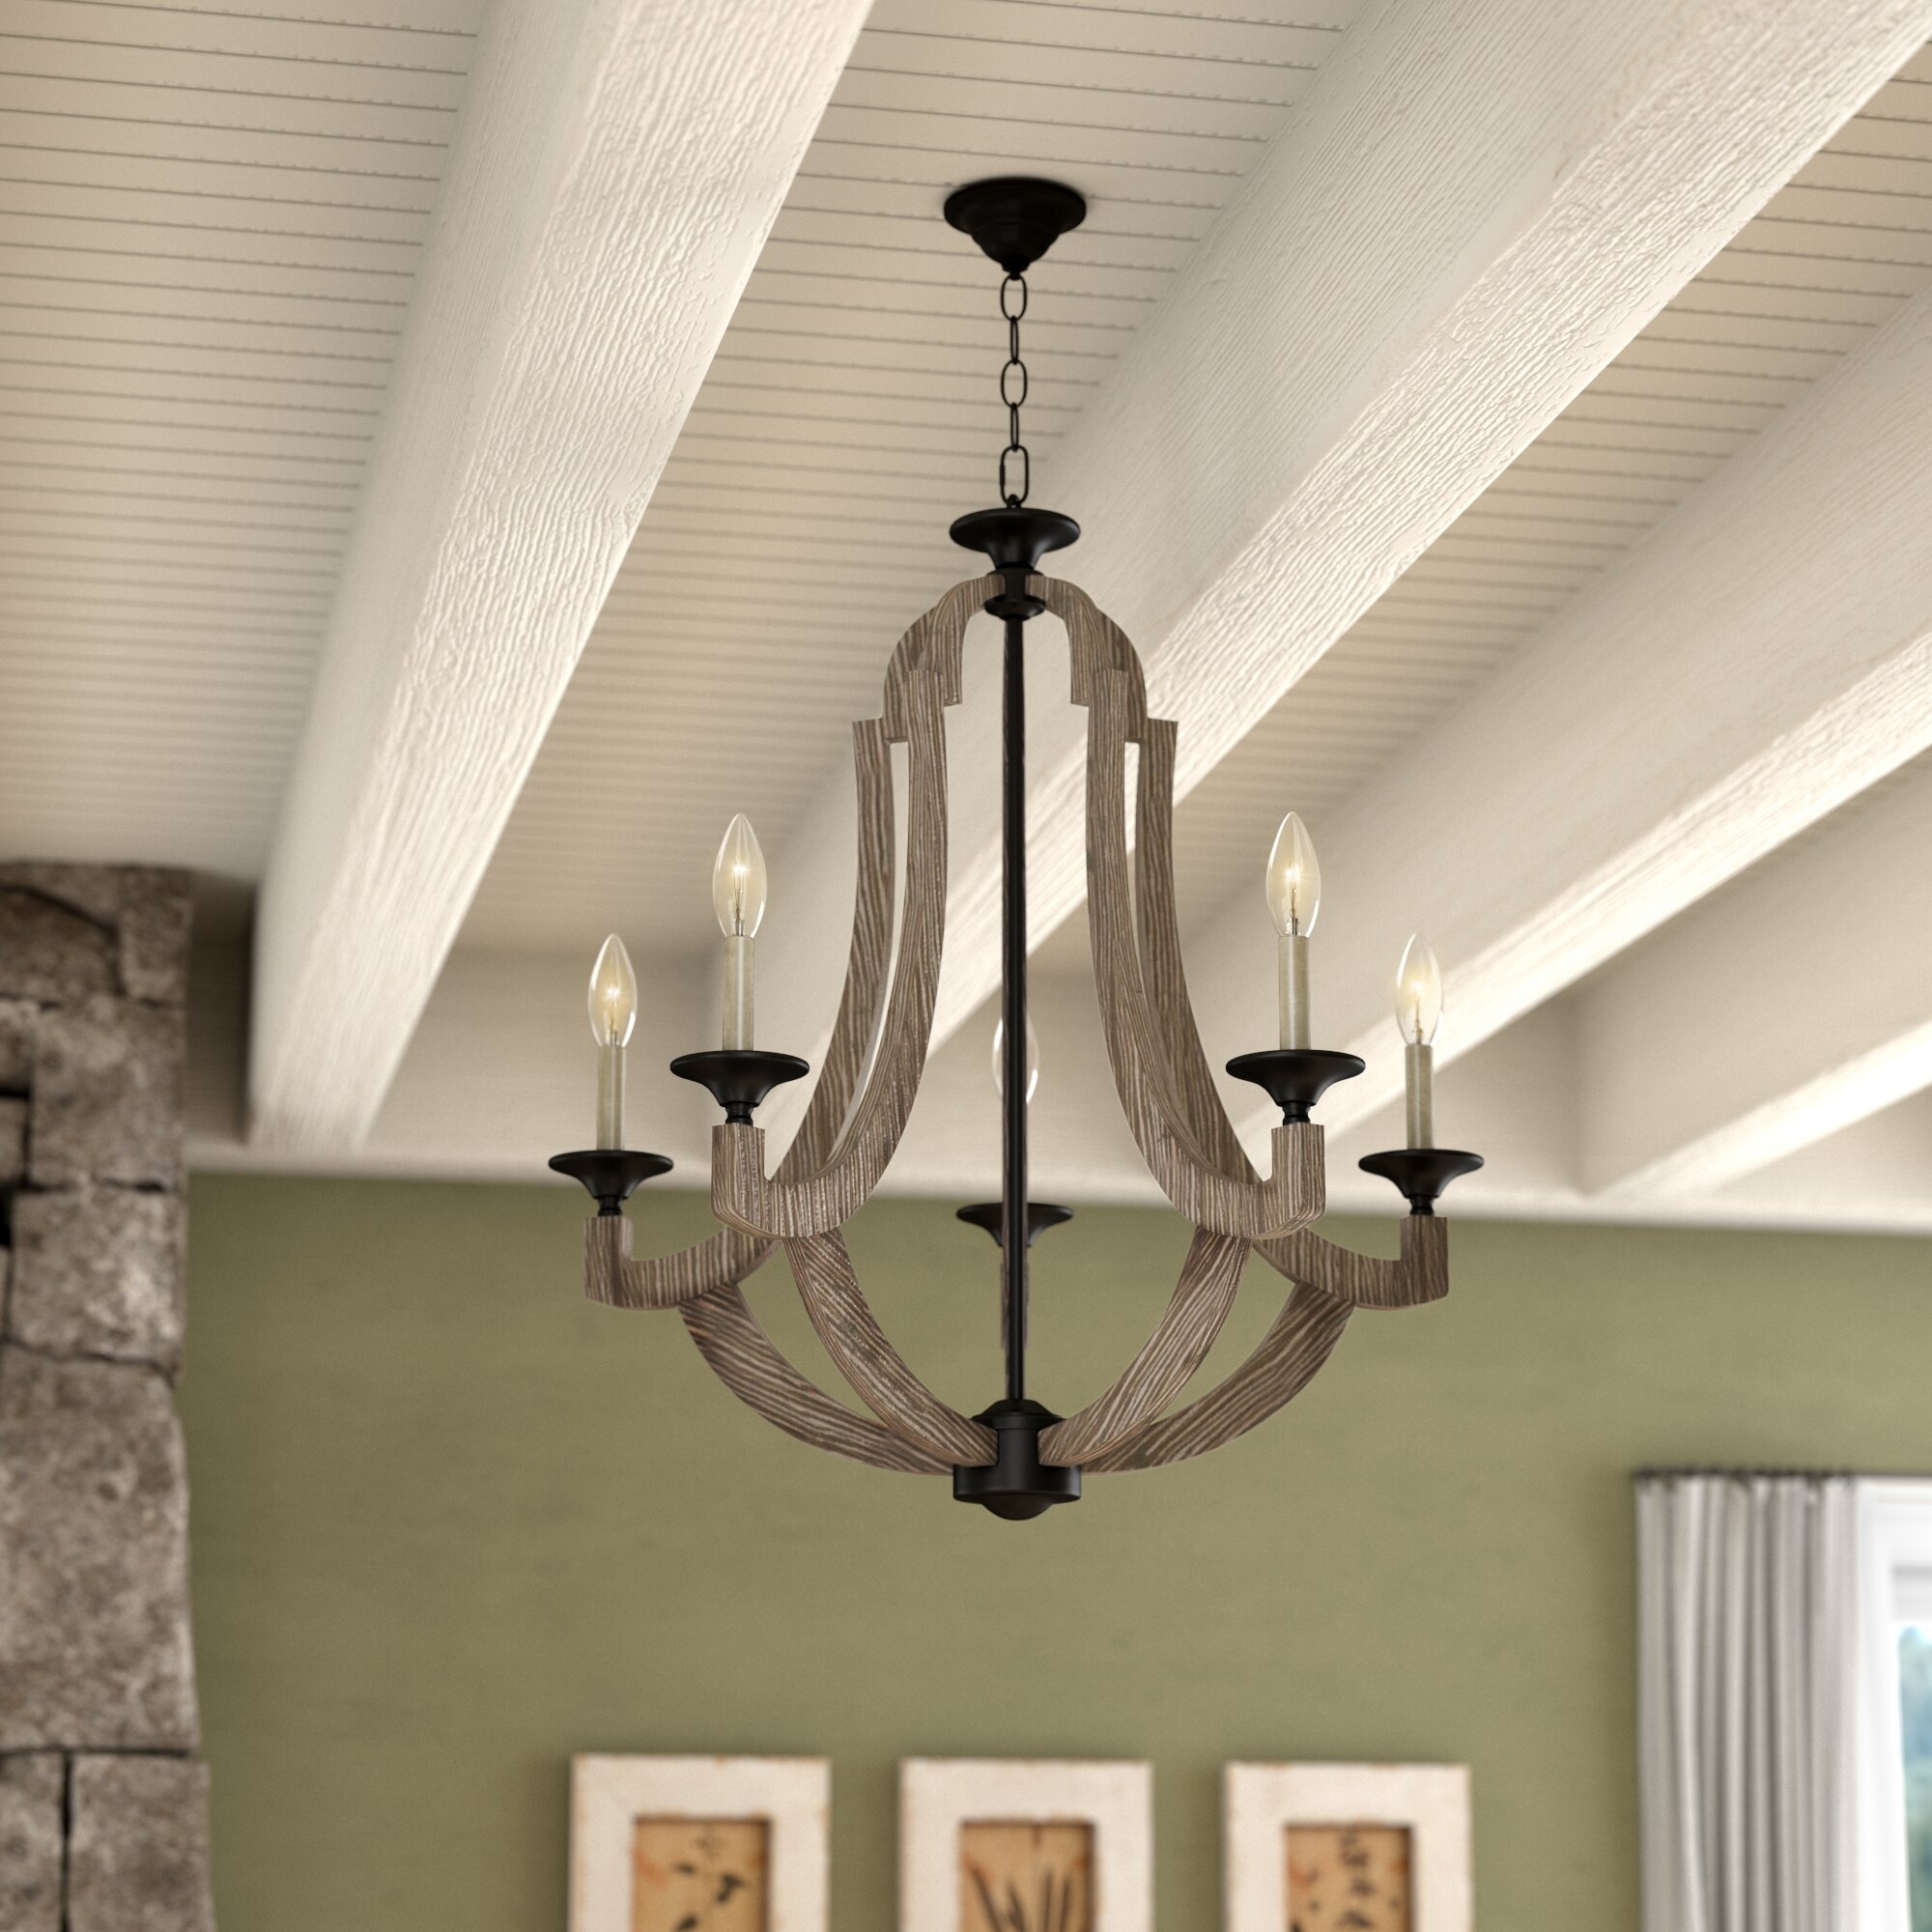 Laurel foundry modern farmhouse marcoux 5 light empire chandelier reviews wayfair